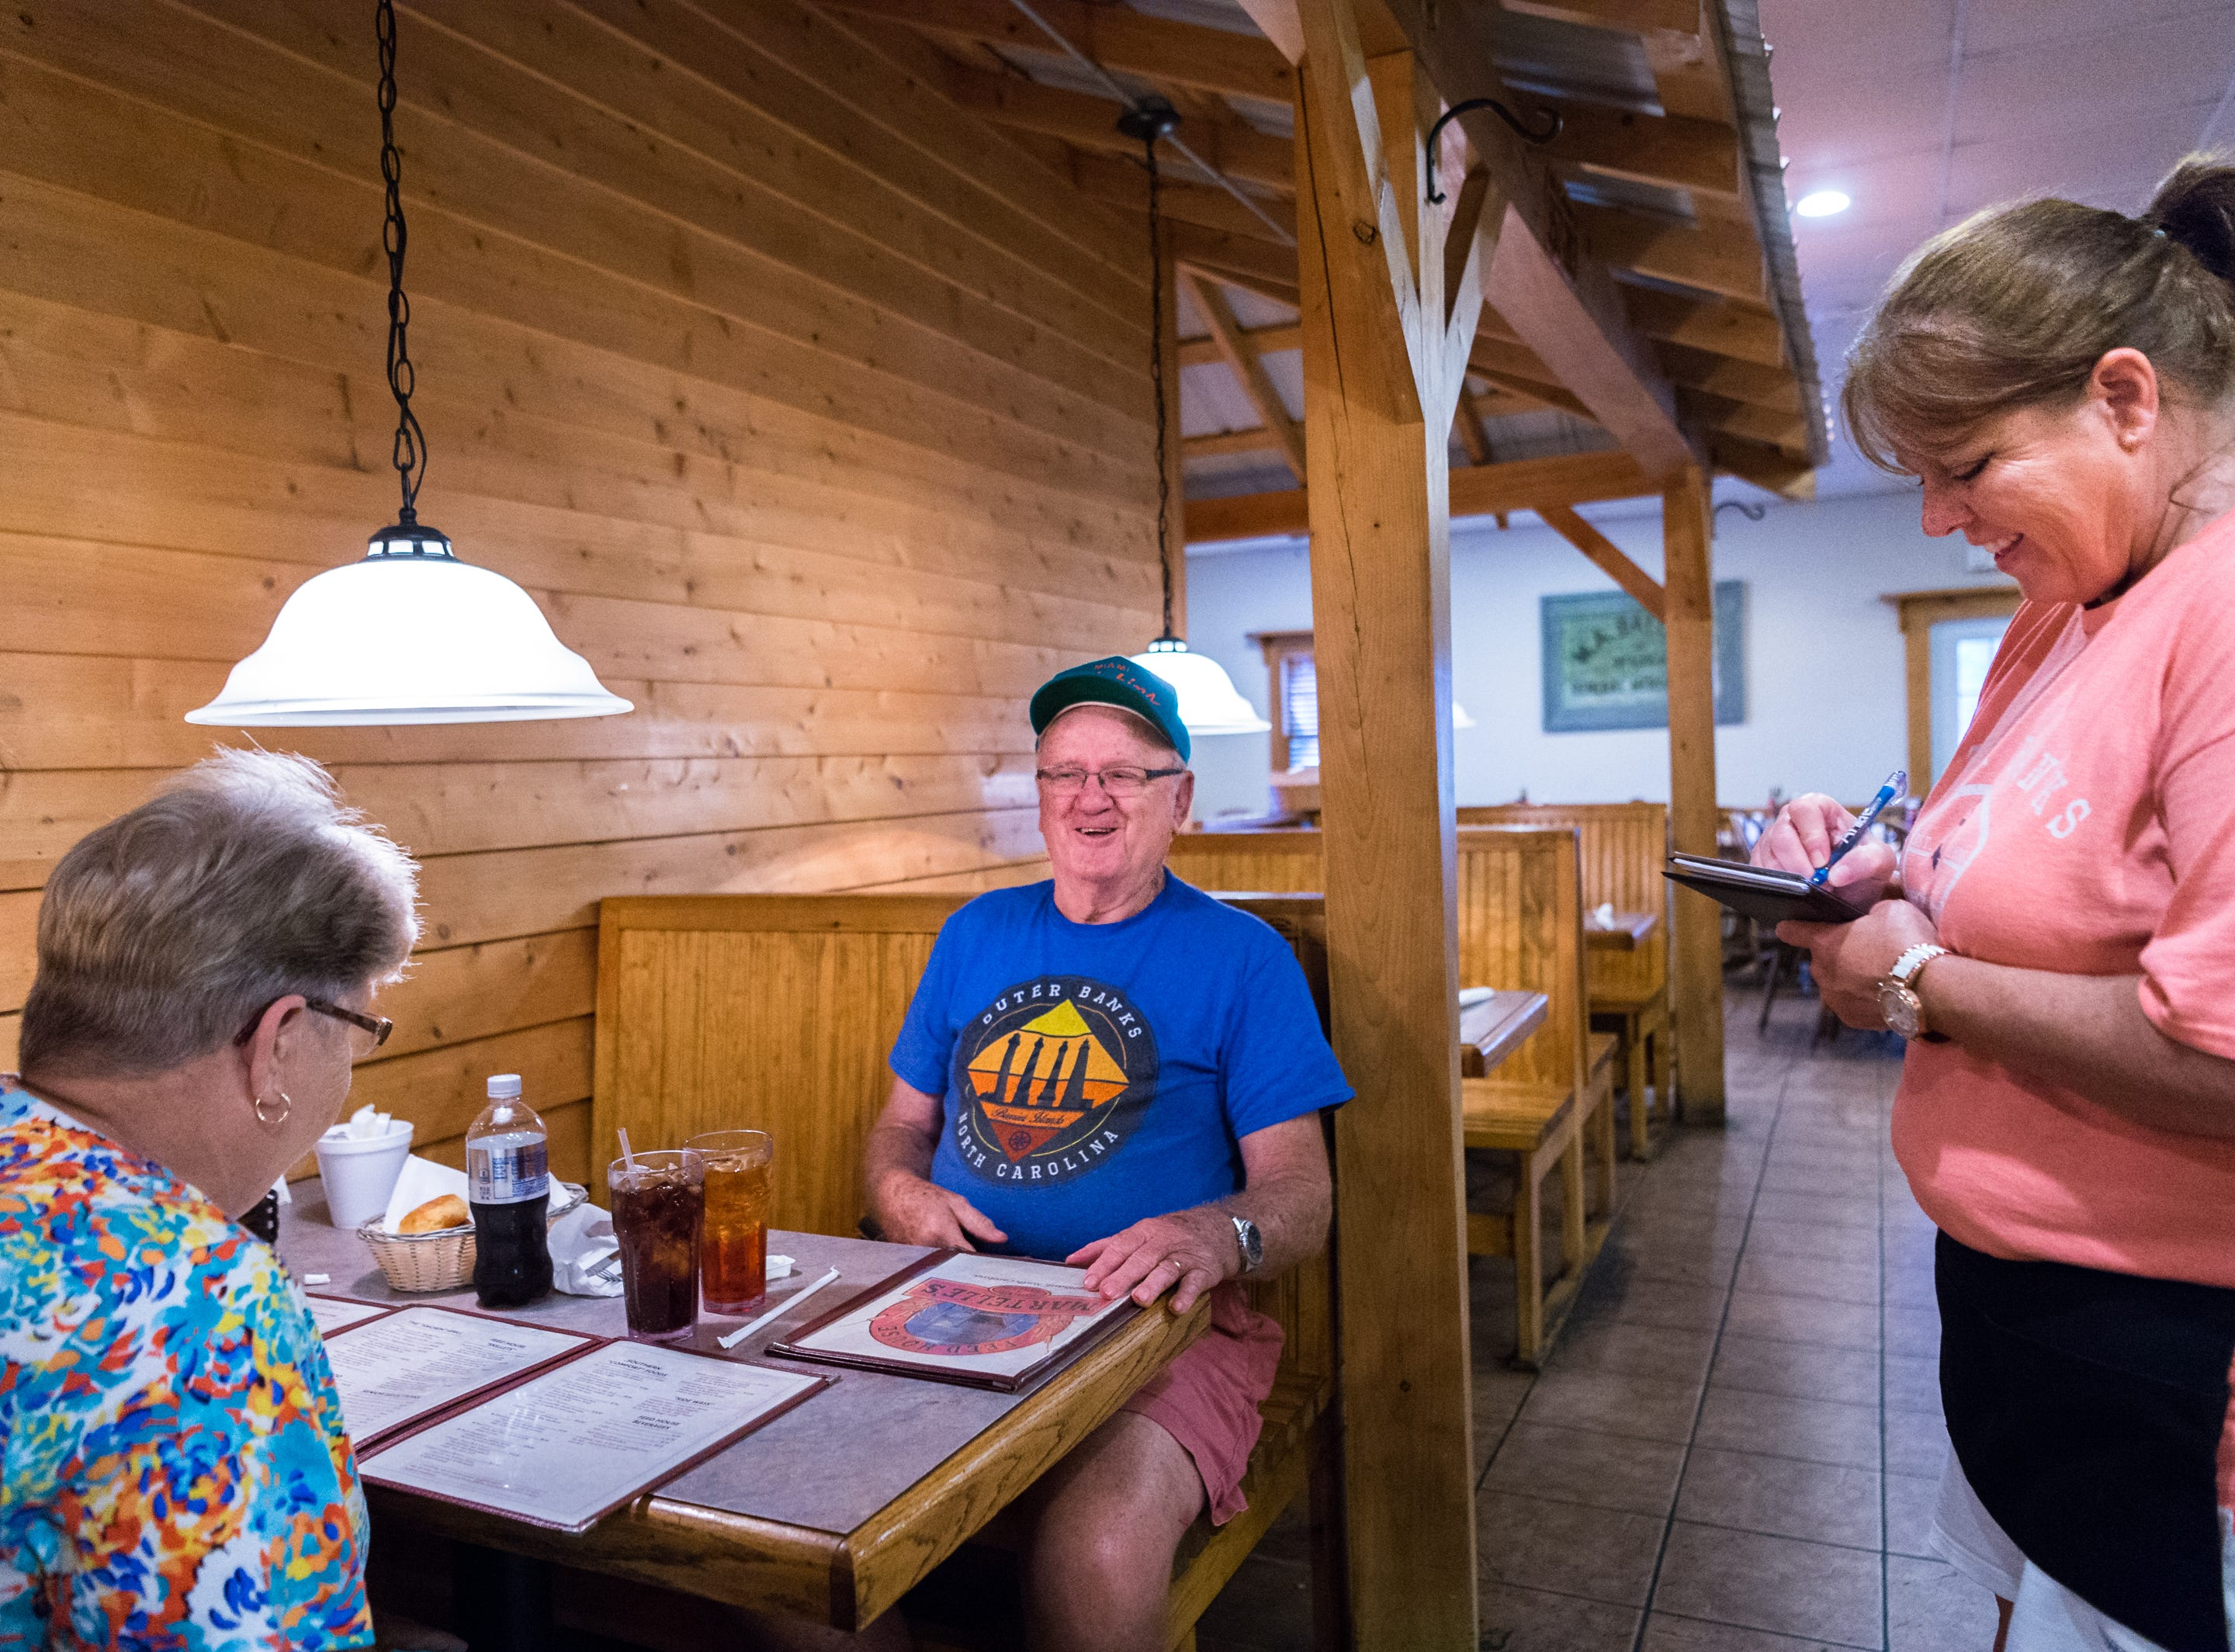 Pam Ransom and her husband George Ransom of Lake Landing, give their order to Sharon Selby at Martelle's Feed House restaurant in Engelhard before they evacuate to Virginia before Hurricane Florence makes landfall in Eastern North Carolina Sept. 11, 2018.